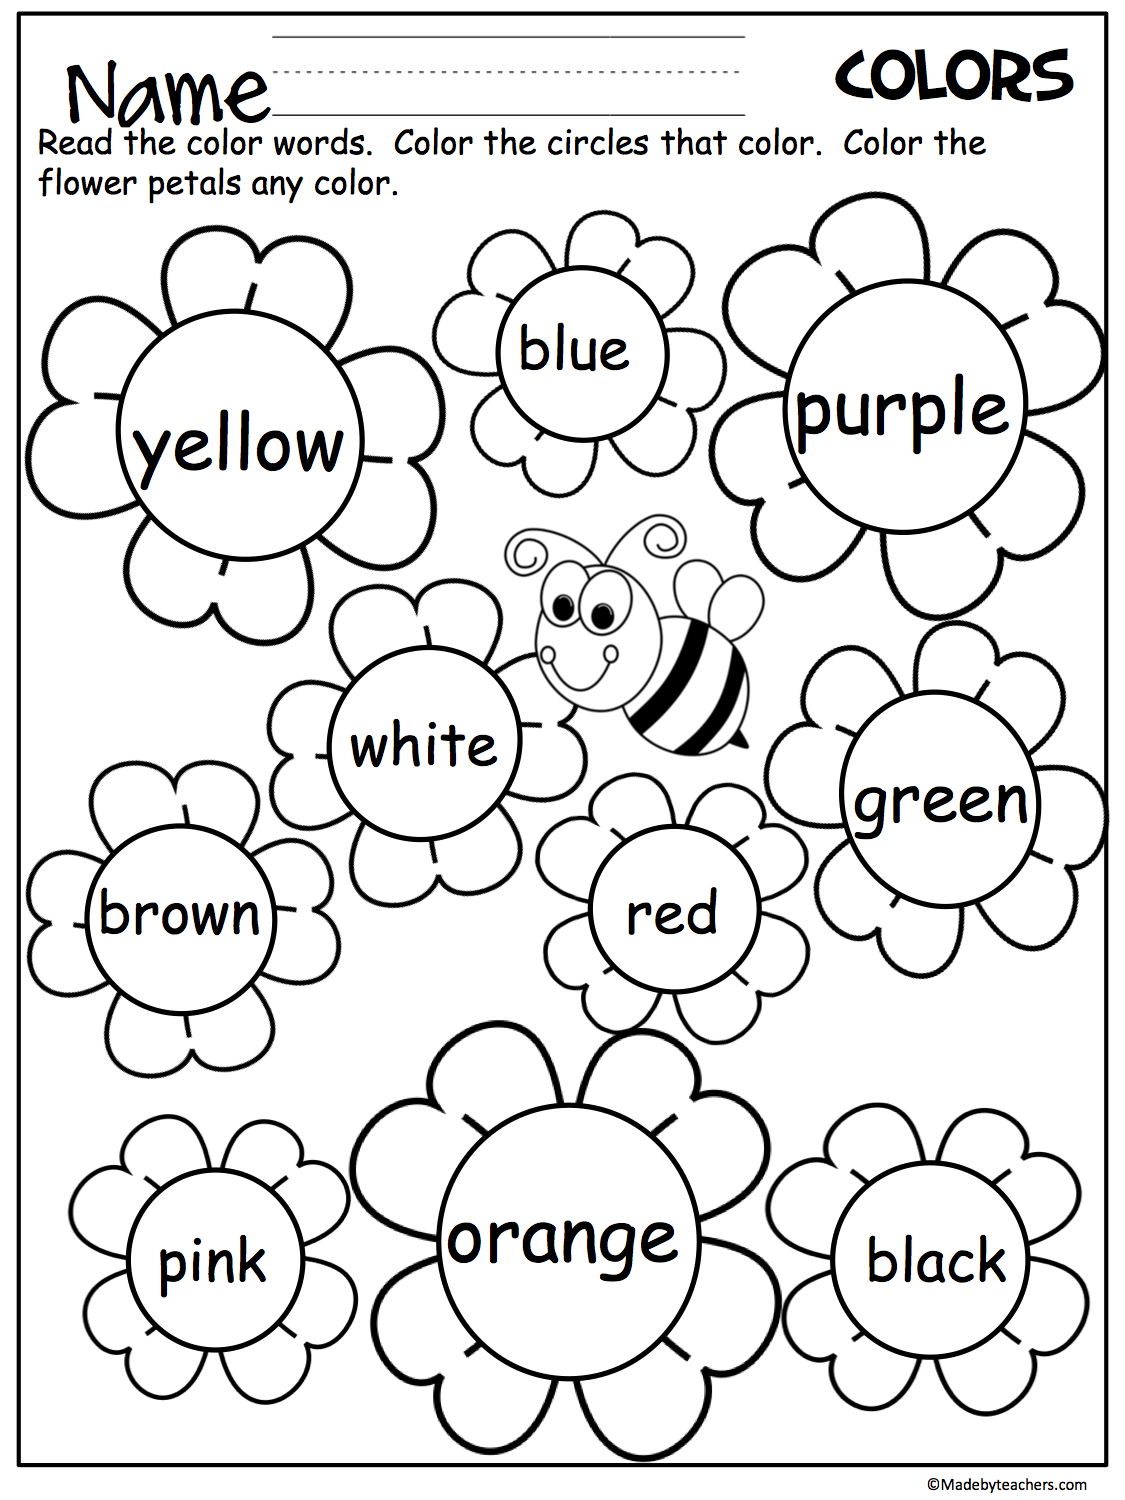 Free Flower Color Words Worksheet Great For The Spring